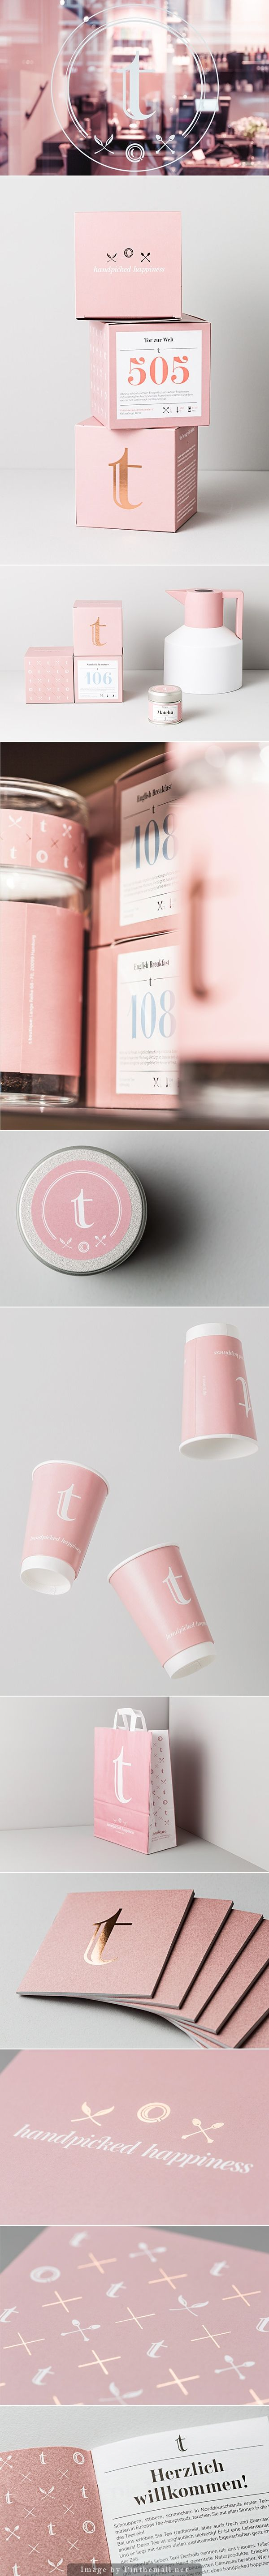 T by Tim Rotermund #identity #packaging #branding PD